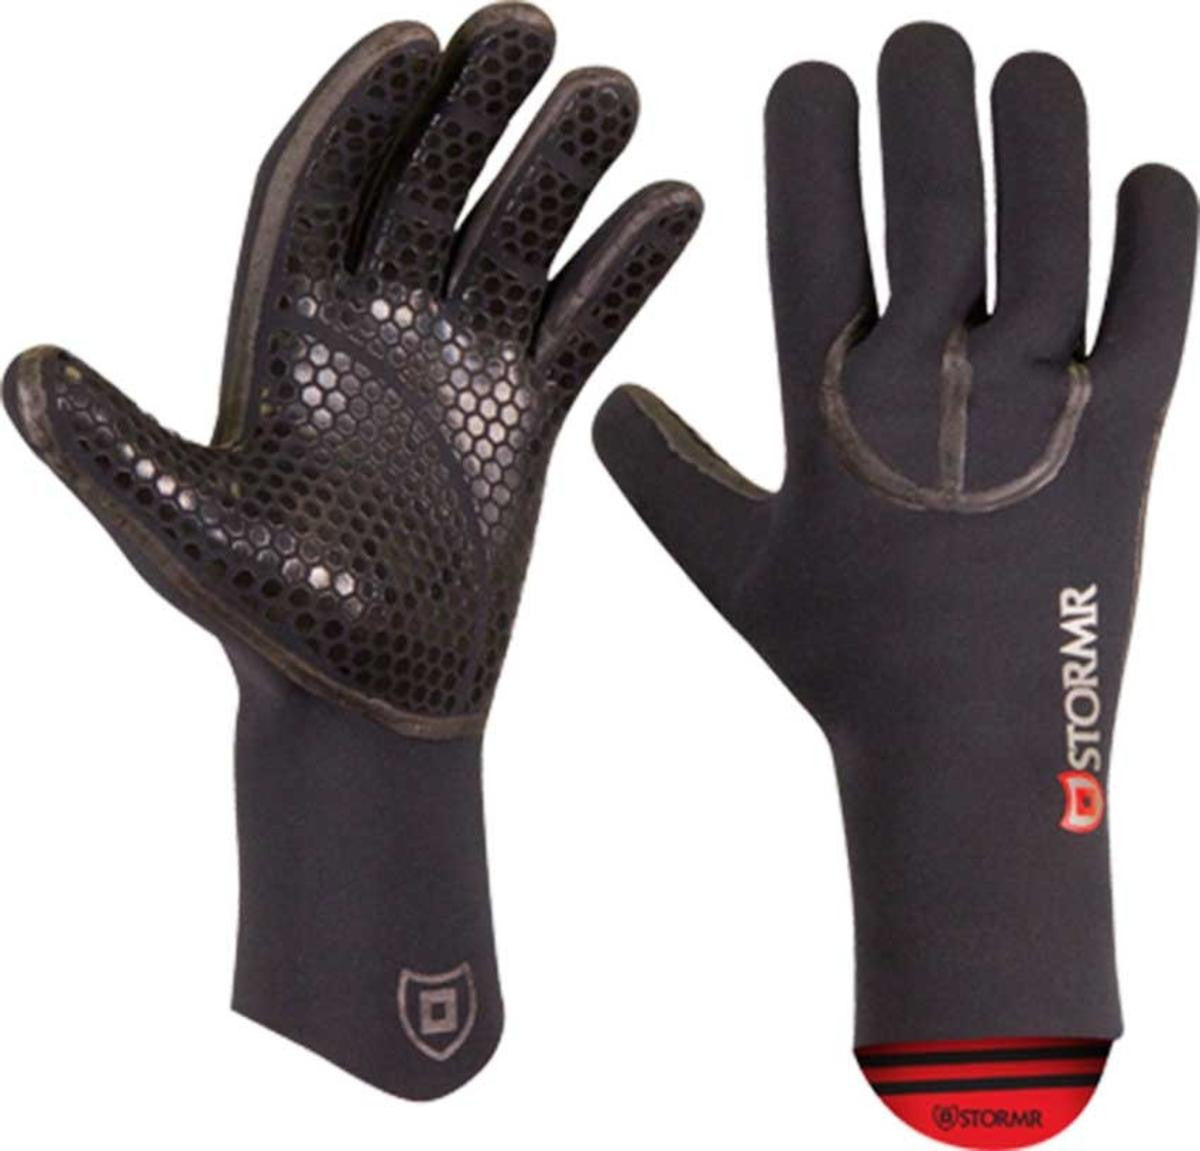 Stormr Typhoon Neoprene Glove - Black